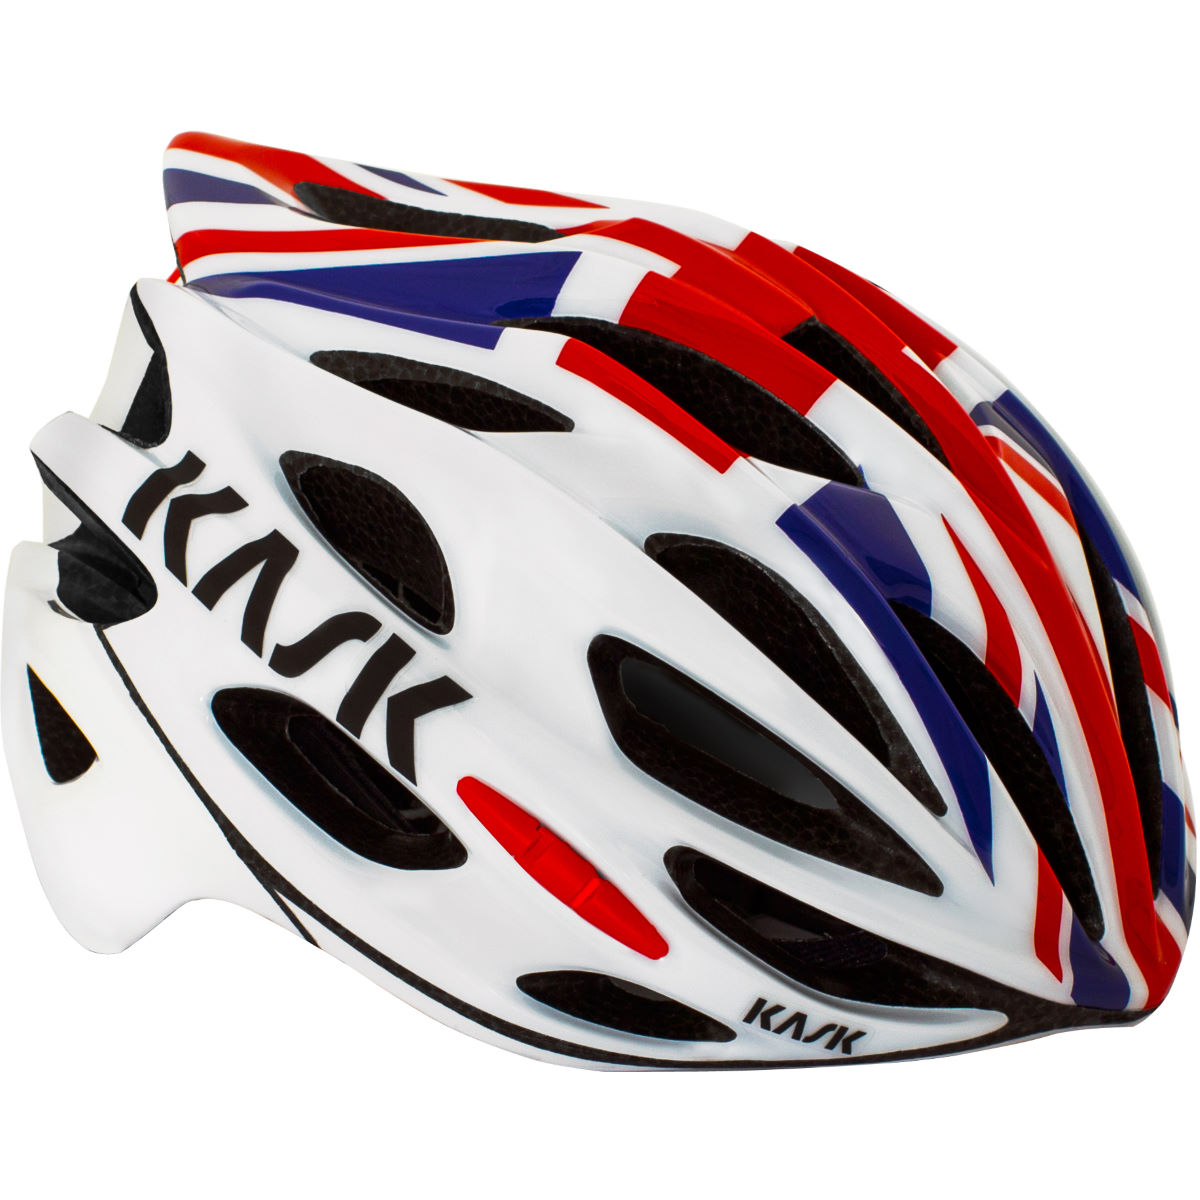 Casque de route Kask Mojito (édition du Team GB) - Large 59 - 62cm Team GB Casques de route